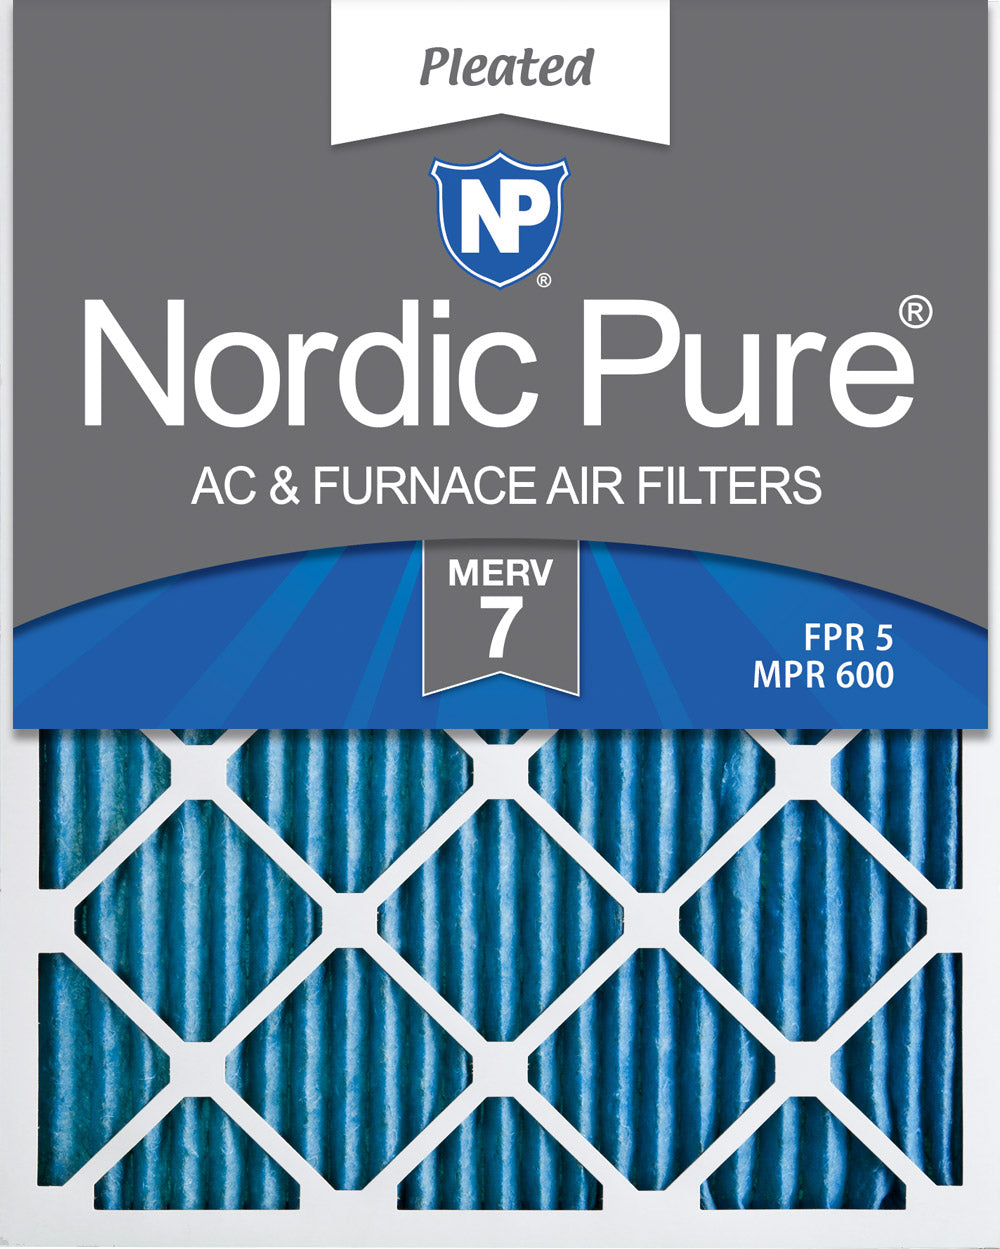 Box of 3 Nordic Pure 16x20x2 MERV 10 Pleated AC Furnace Air Filter